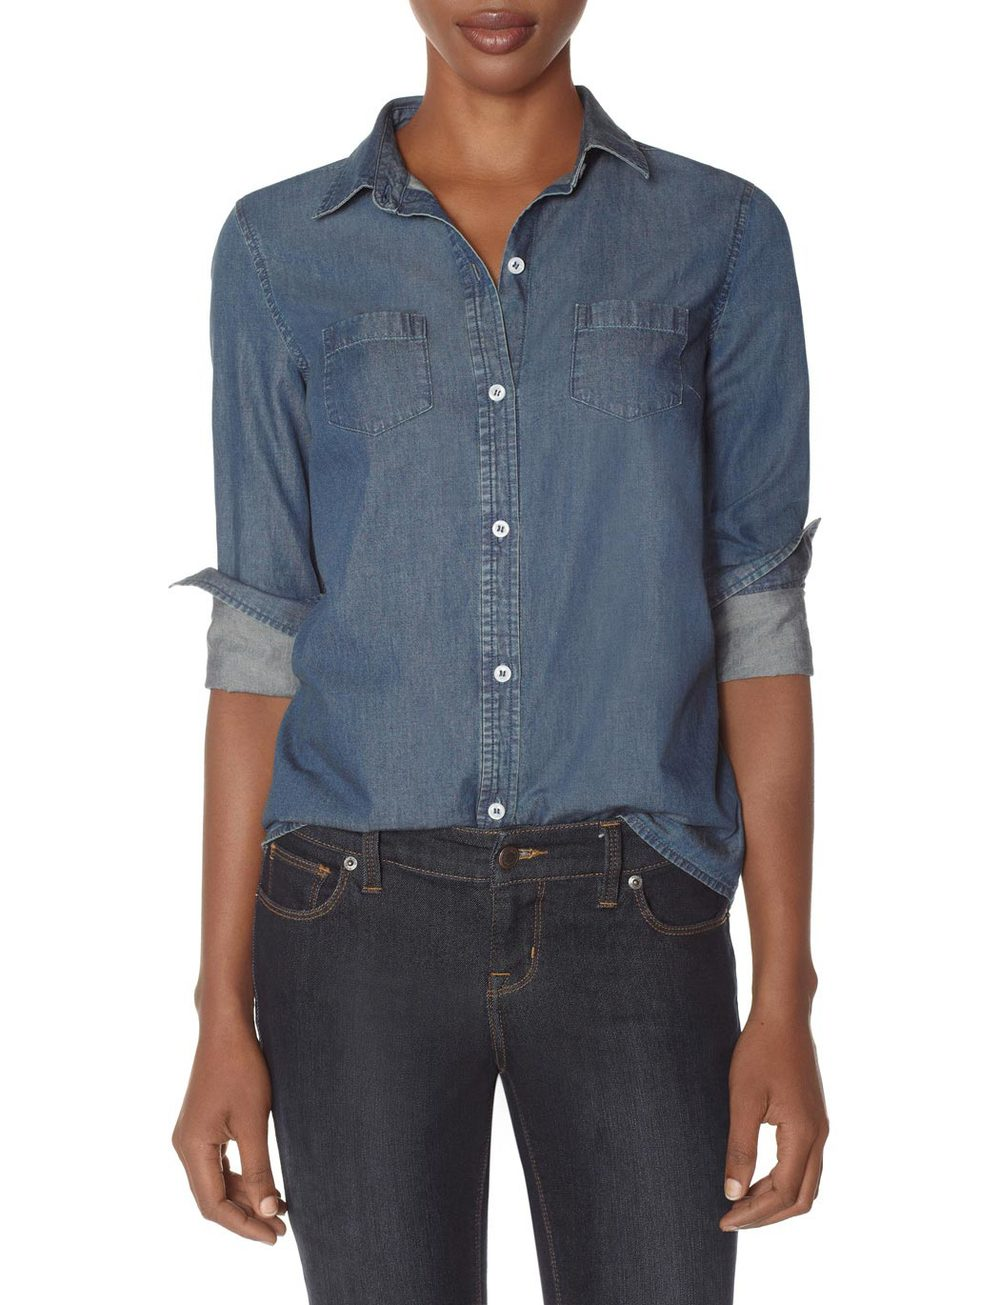 OBR Denim shirt. The Limited. $49.95.